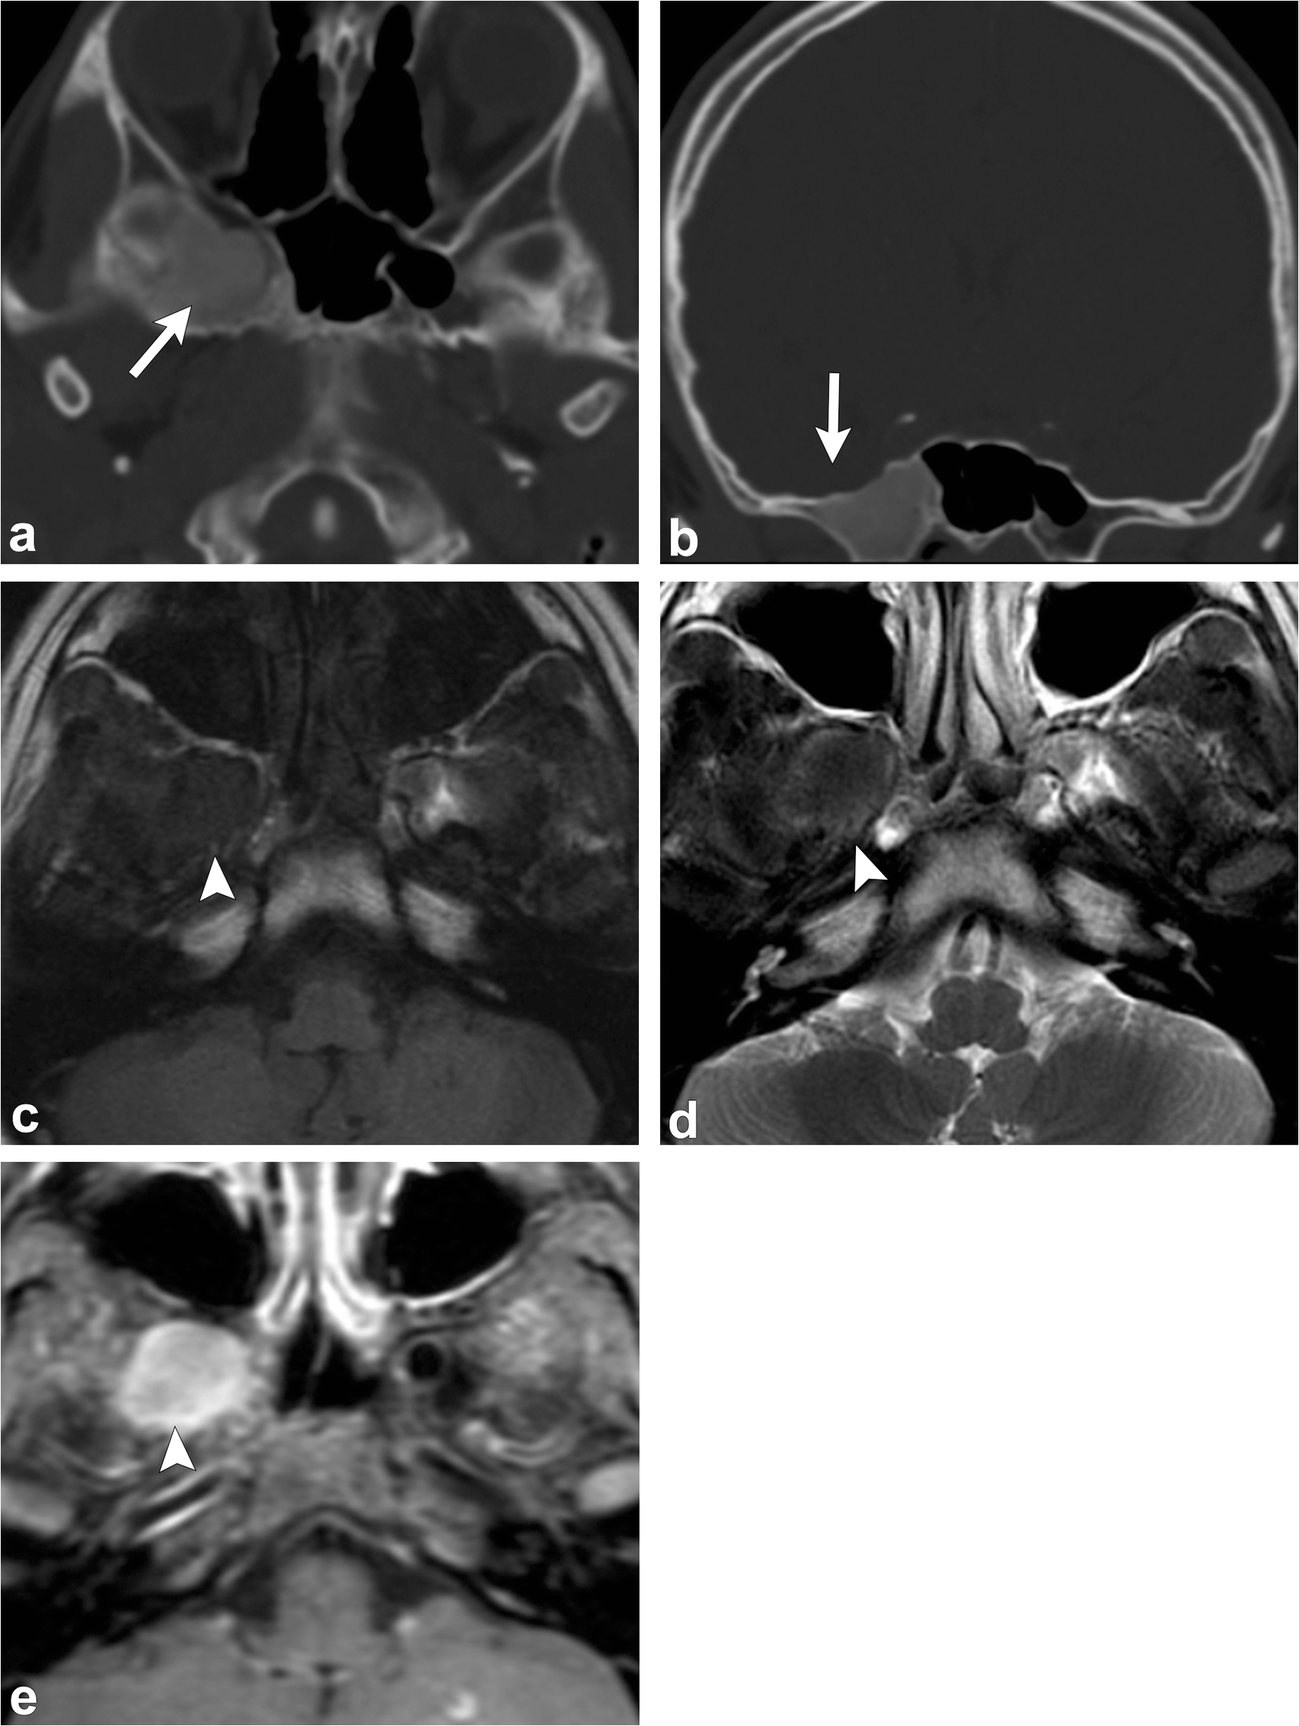 Radiological review of skull lesions | SpringerLink